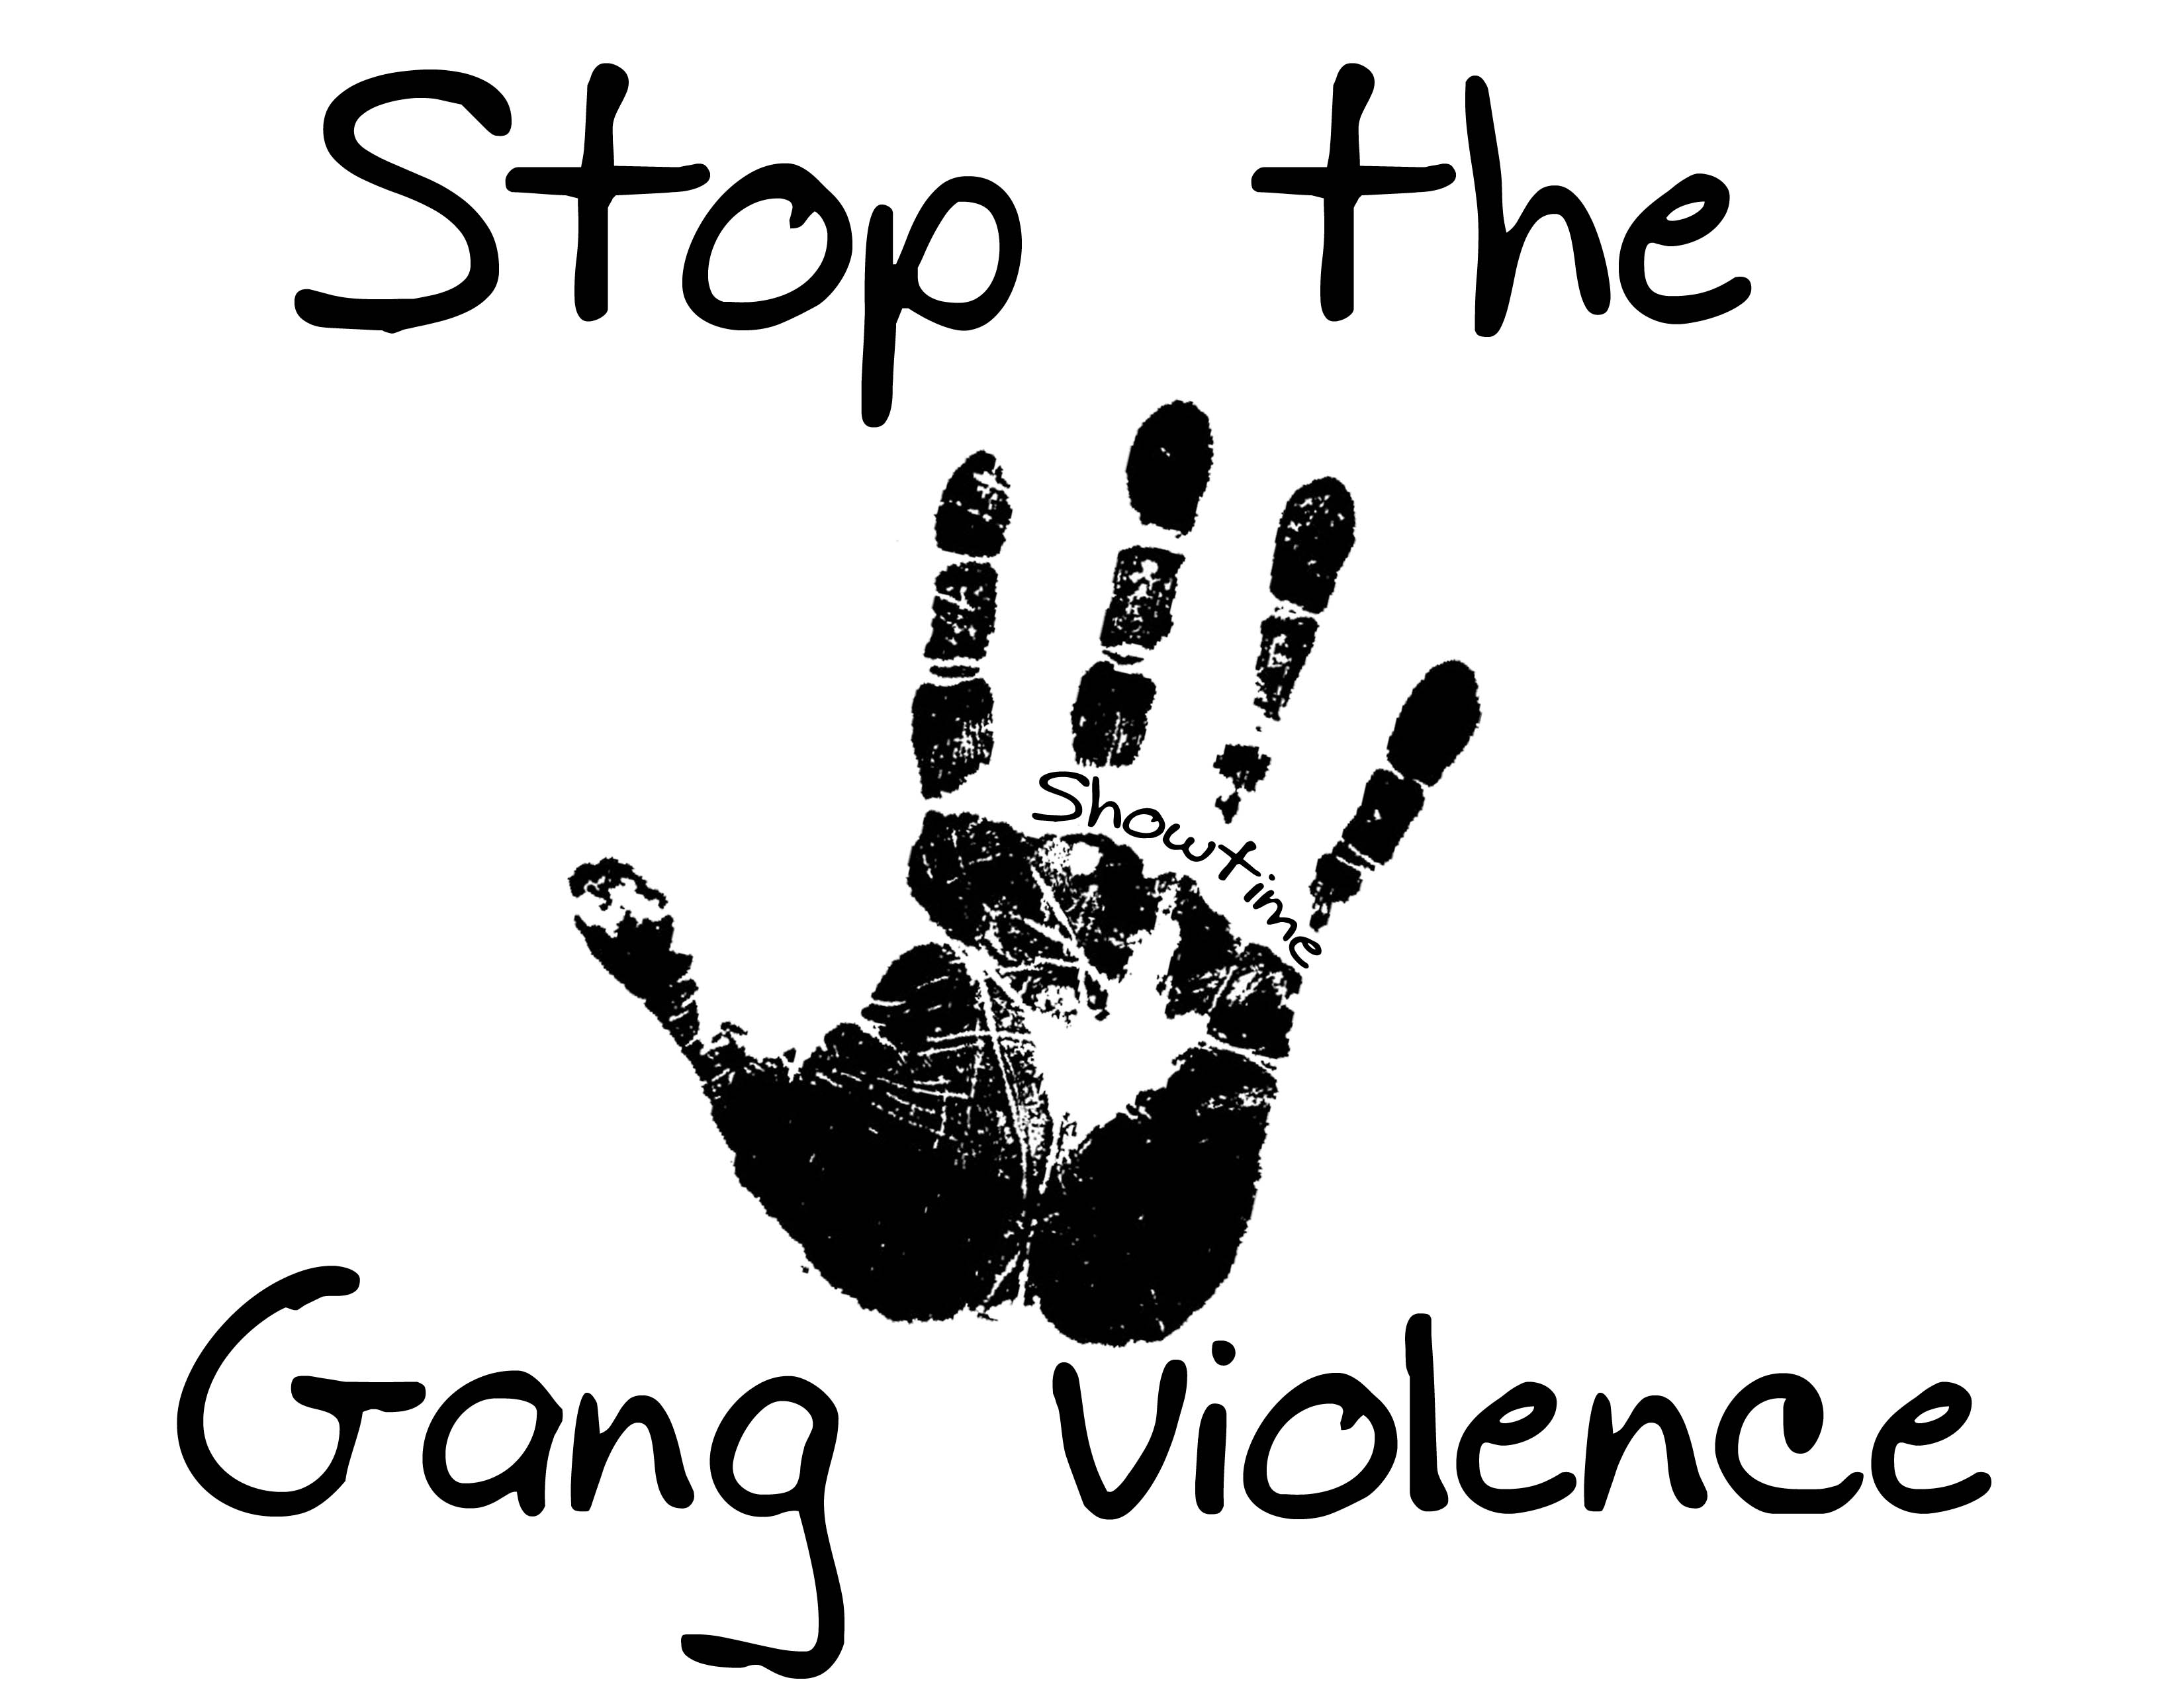 gang violence in the united states essay